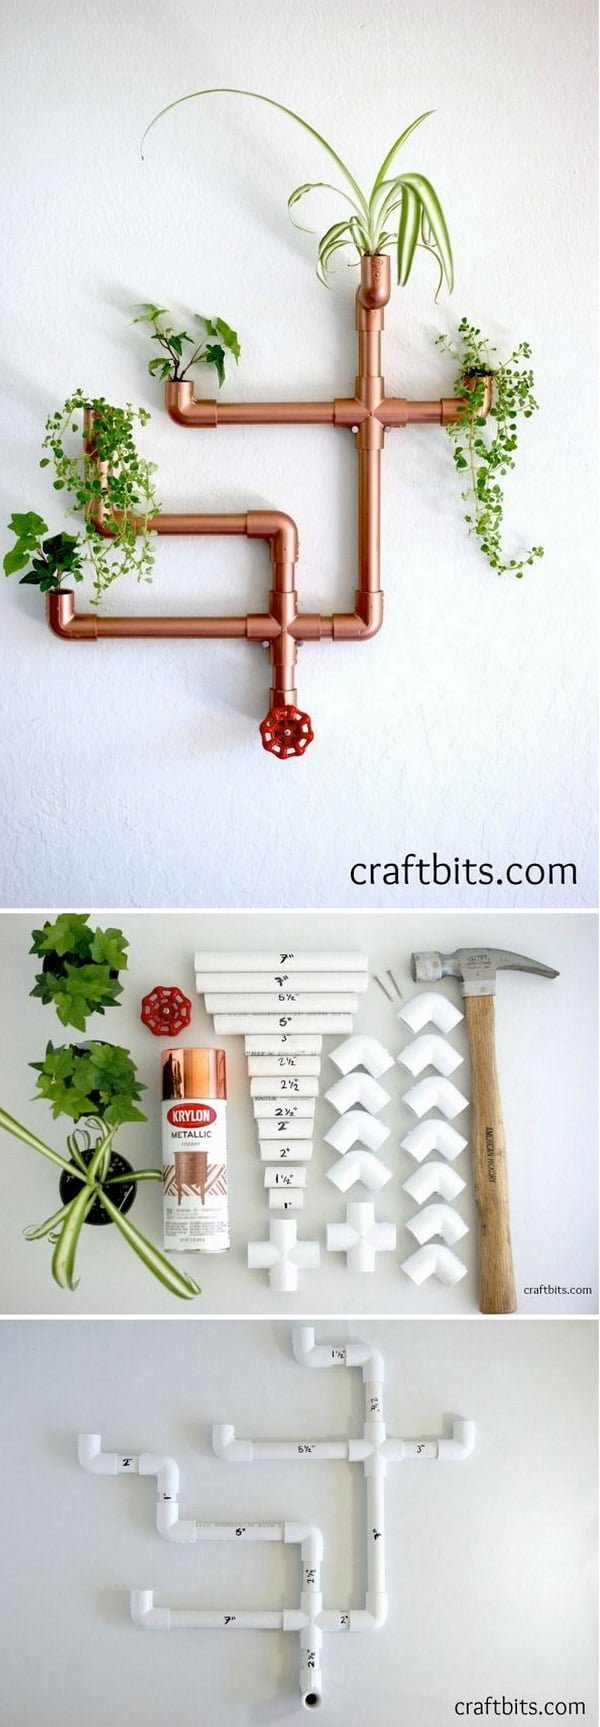 16 Trendy DIY Ideas to Decorate with Copper - Check out how to make this cute #DIY #copper pipe wall planter #homedecor